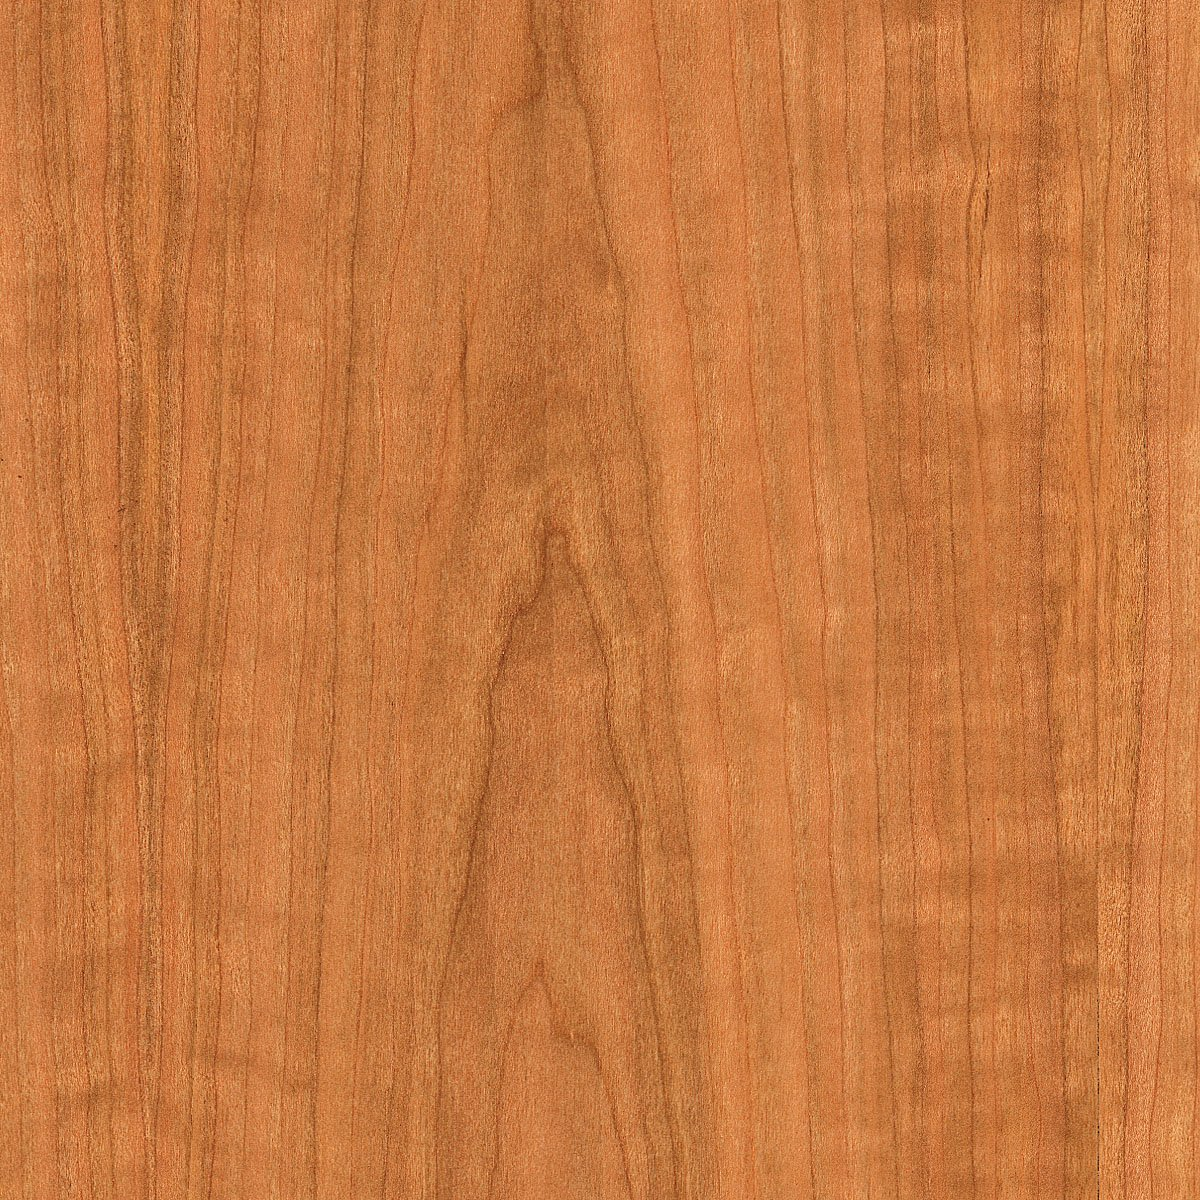 Cherry, Flat Cut, 24x96 10 mil(Paperback) Wood Veneer Sheet by Wood-All